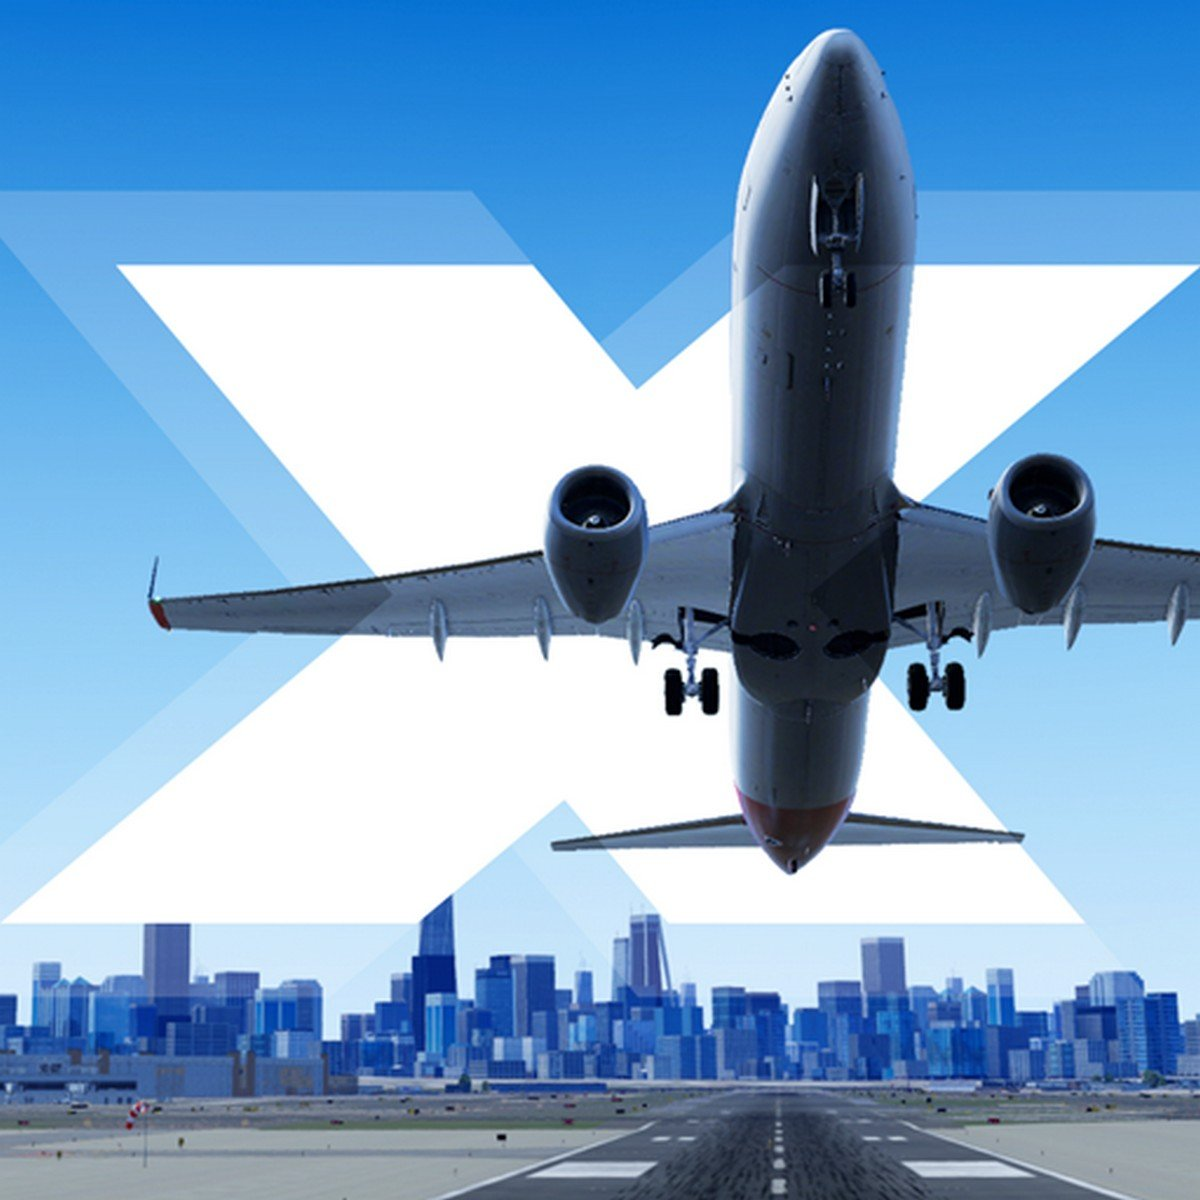 X-Plane Flight Simulator APK MOD